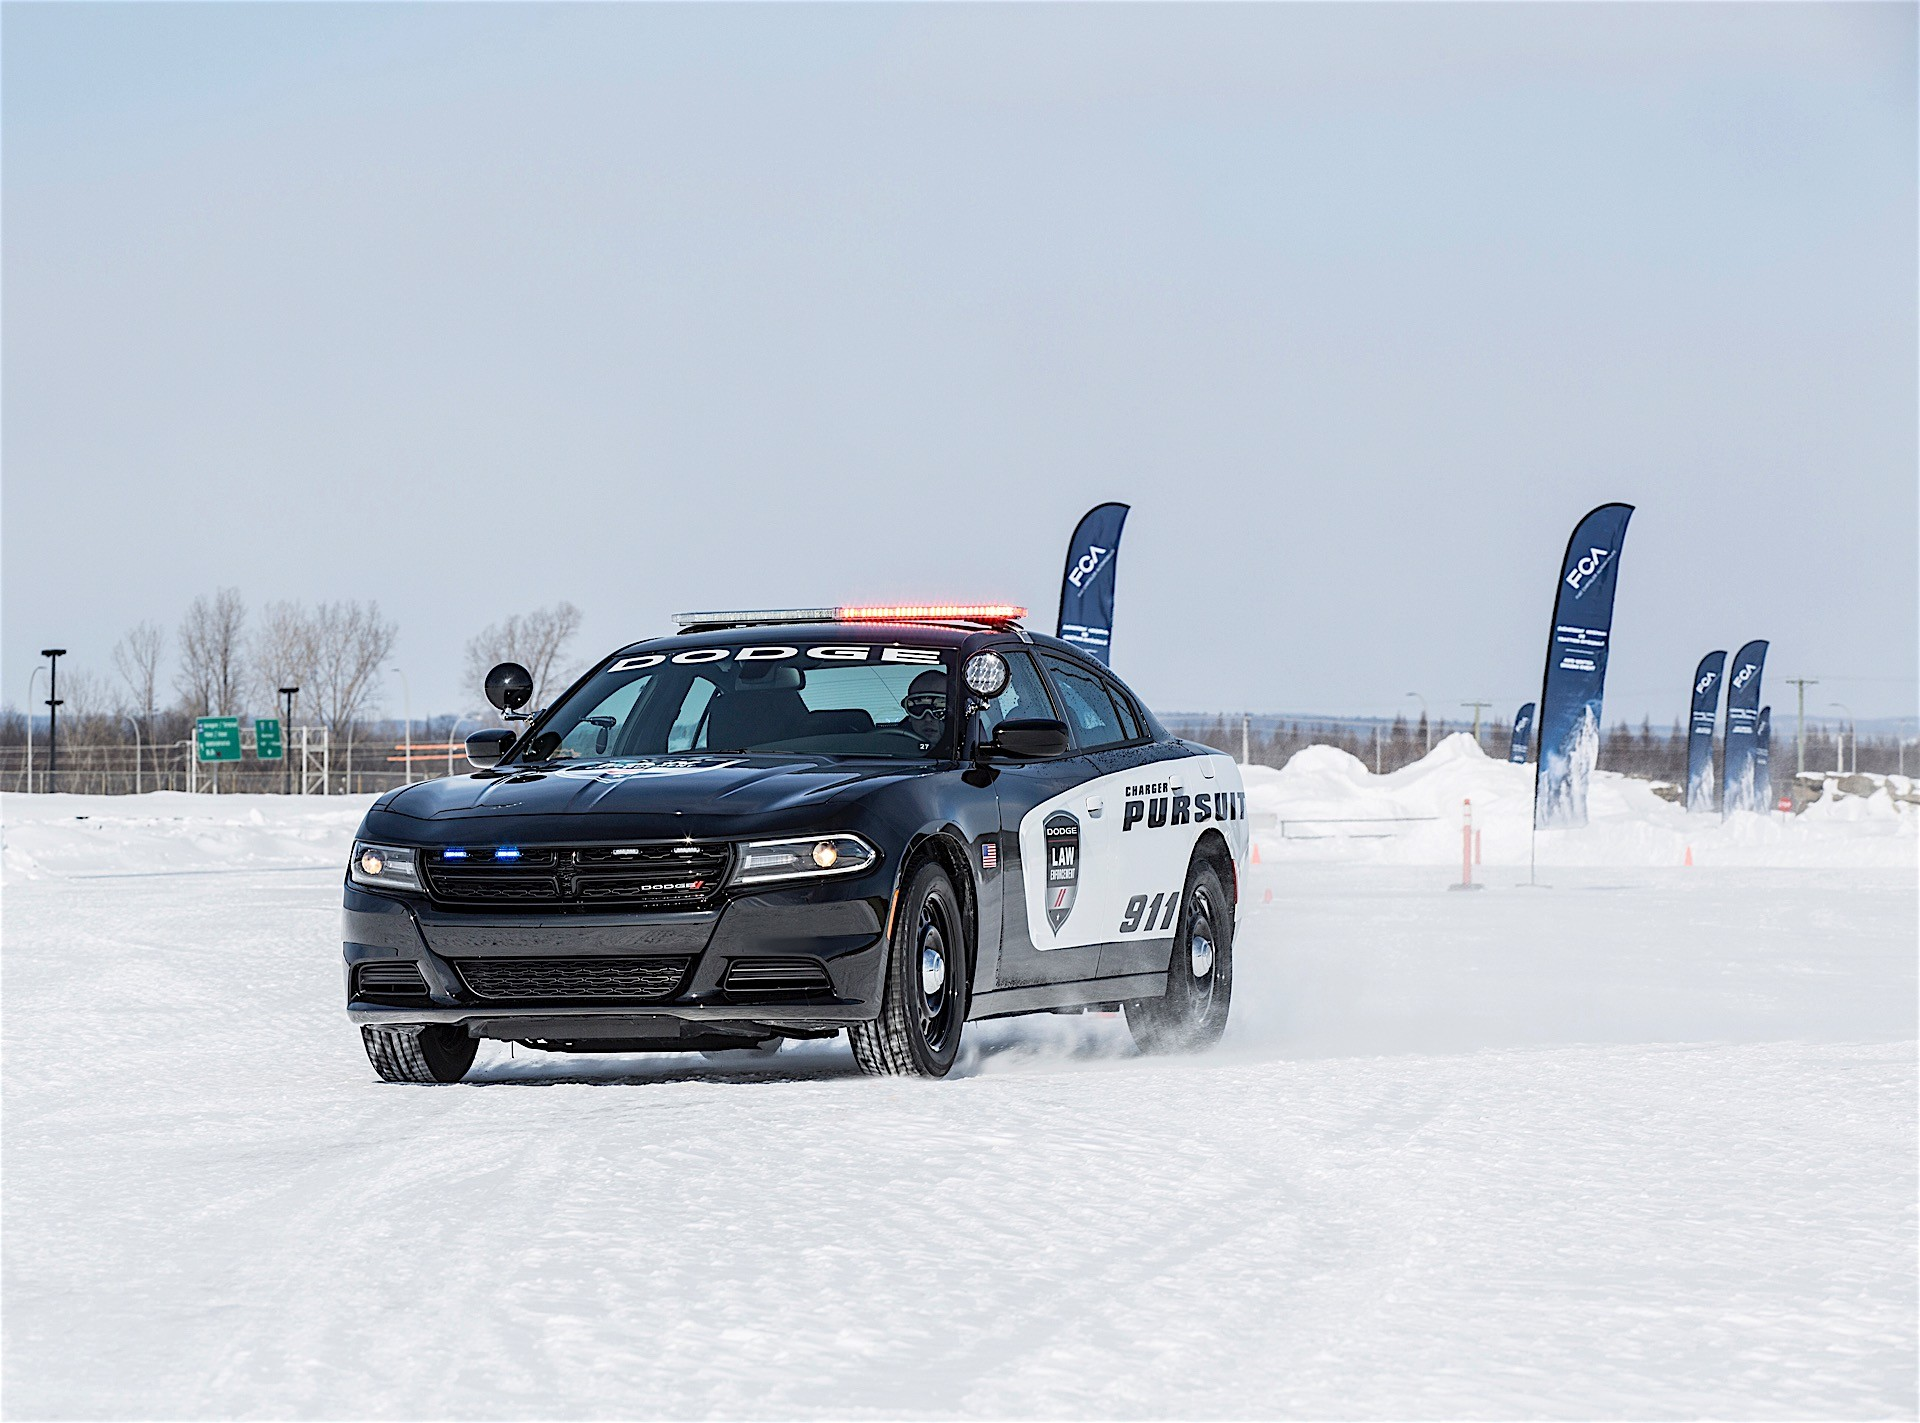 Dodge Charger Police Car >> California Highway Patrol Introduces Fleet of Dodge Charger Pursuit Vehicles - autoevolution